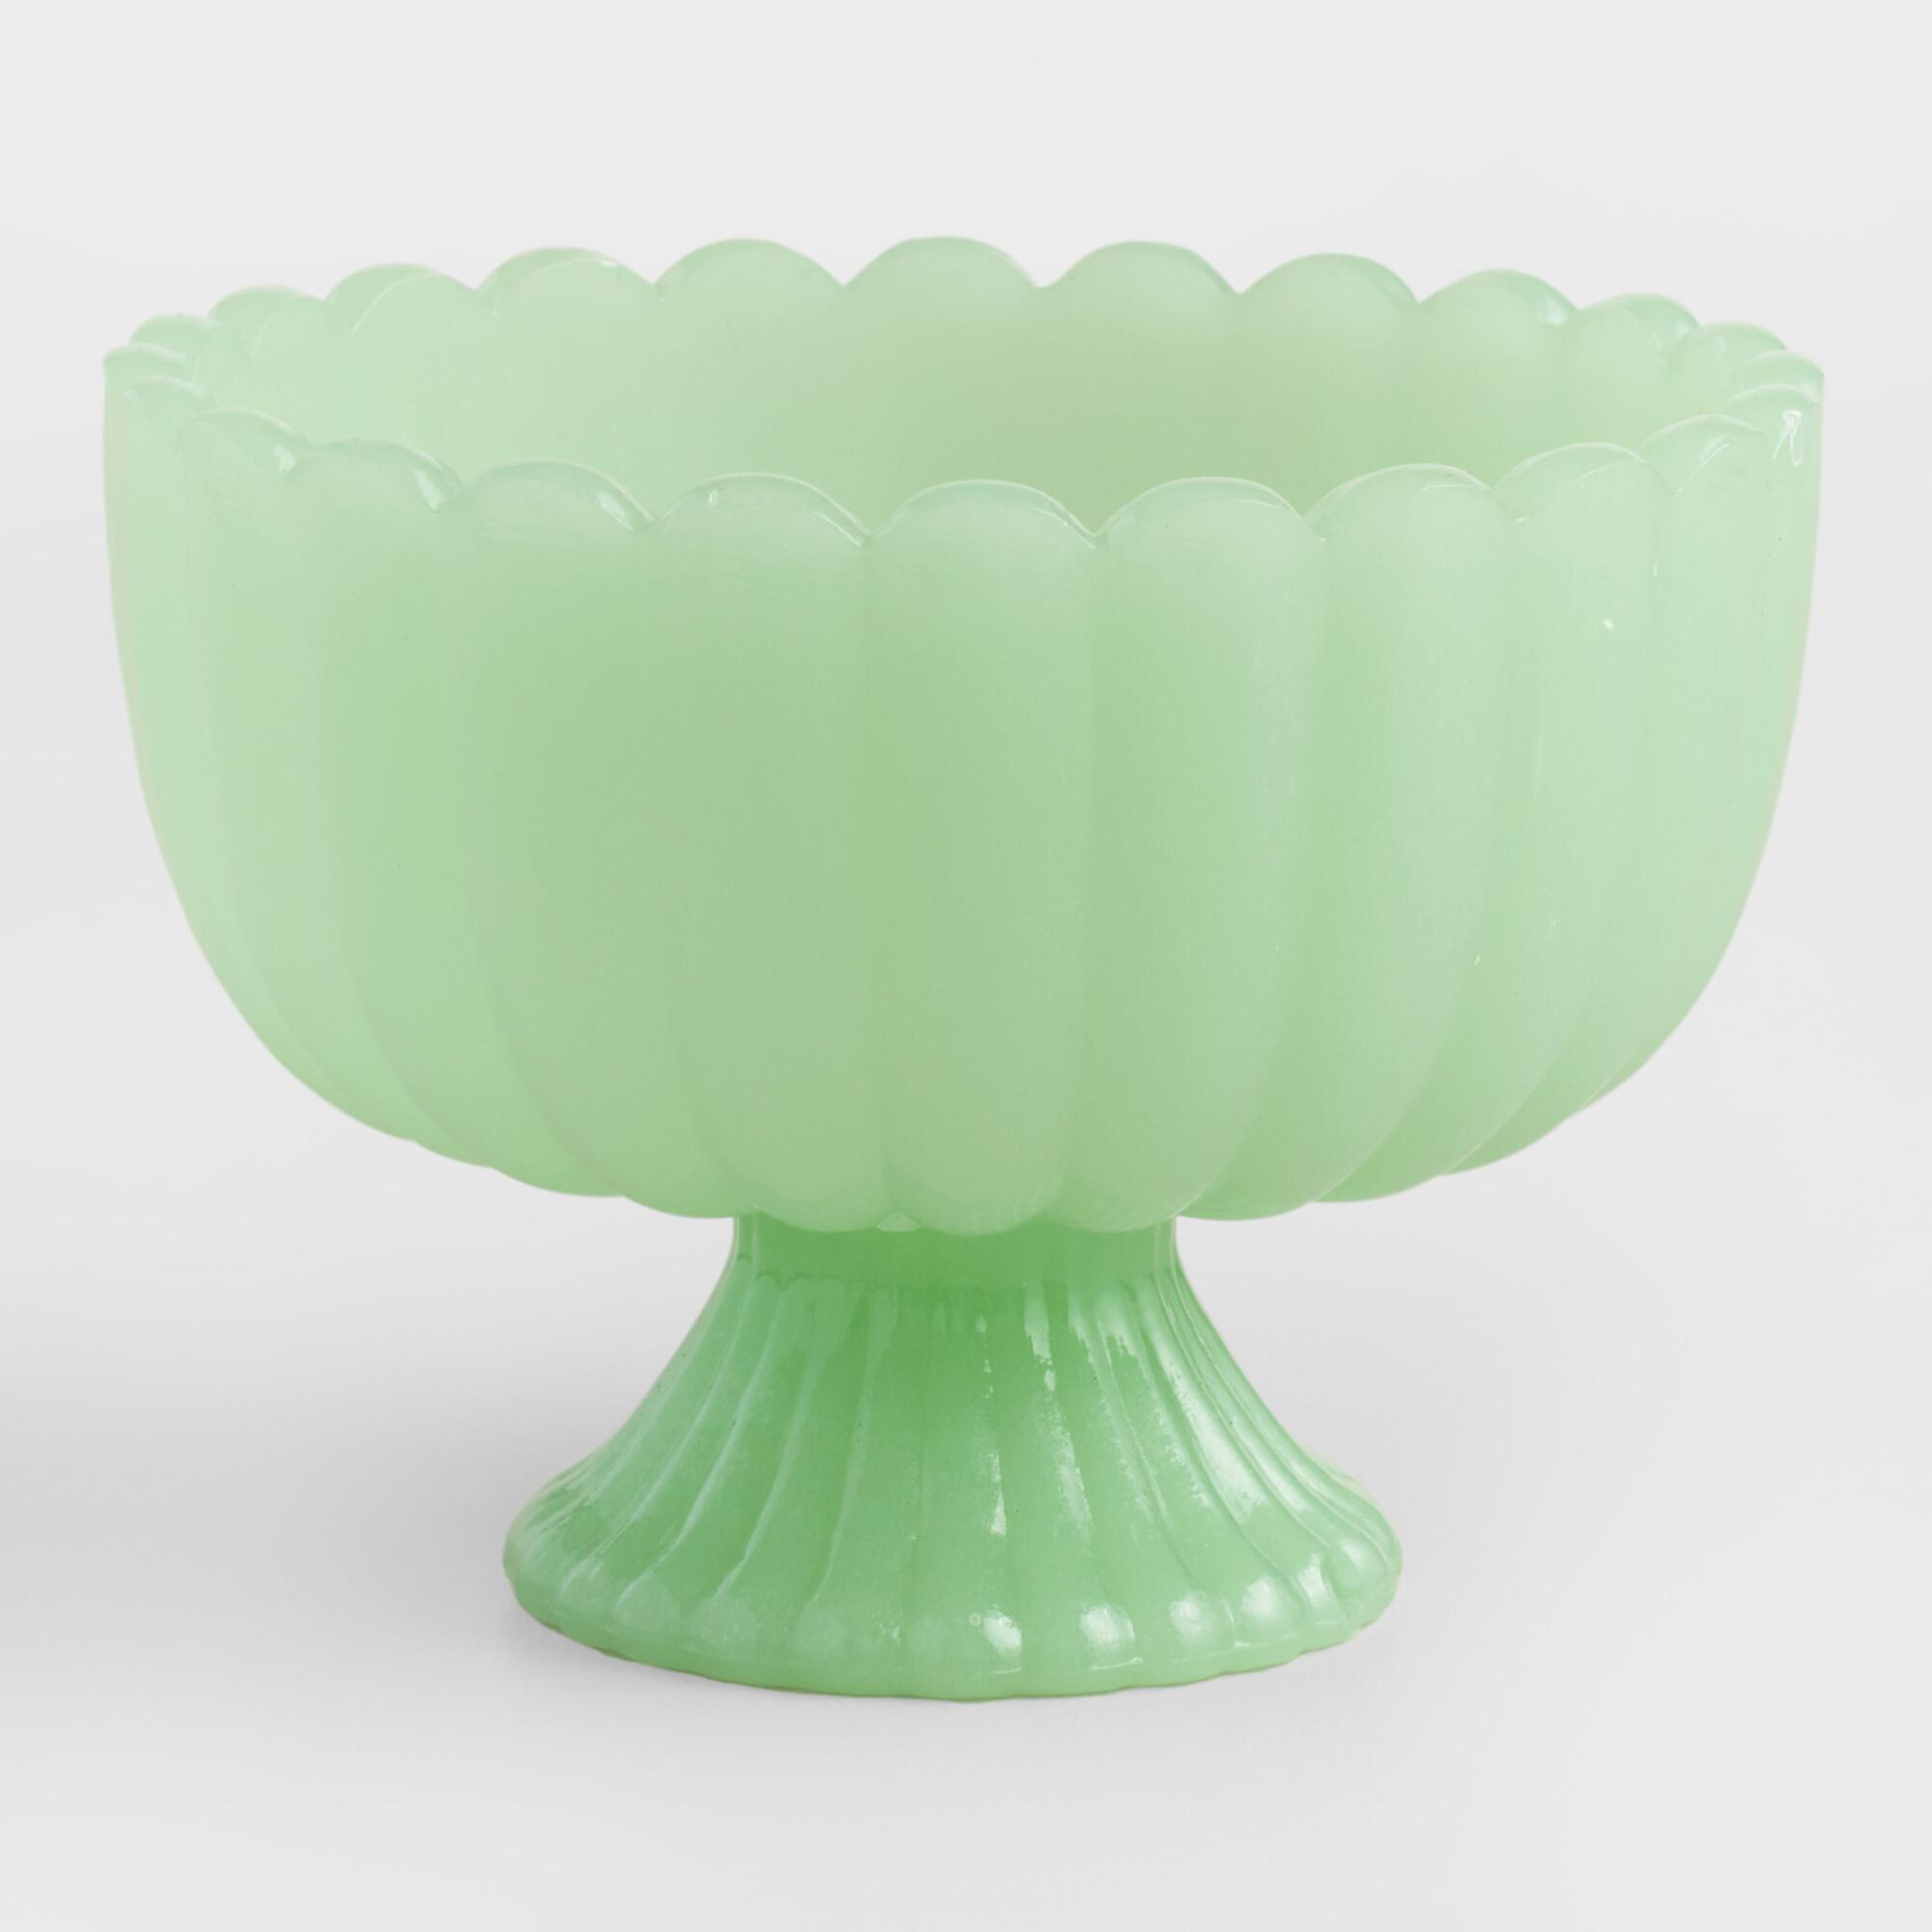 Jade Green Glass Footed Bowls Set of 6 by World Market